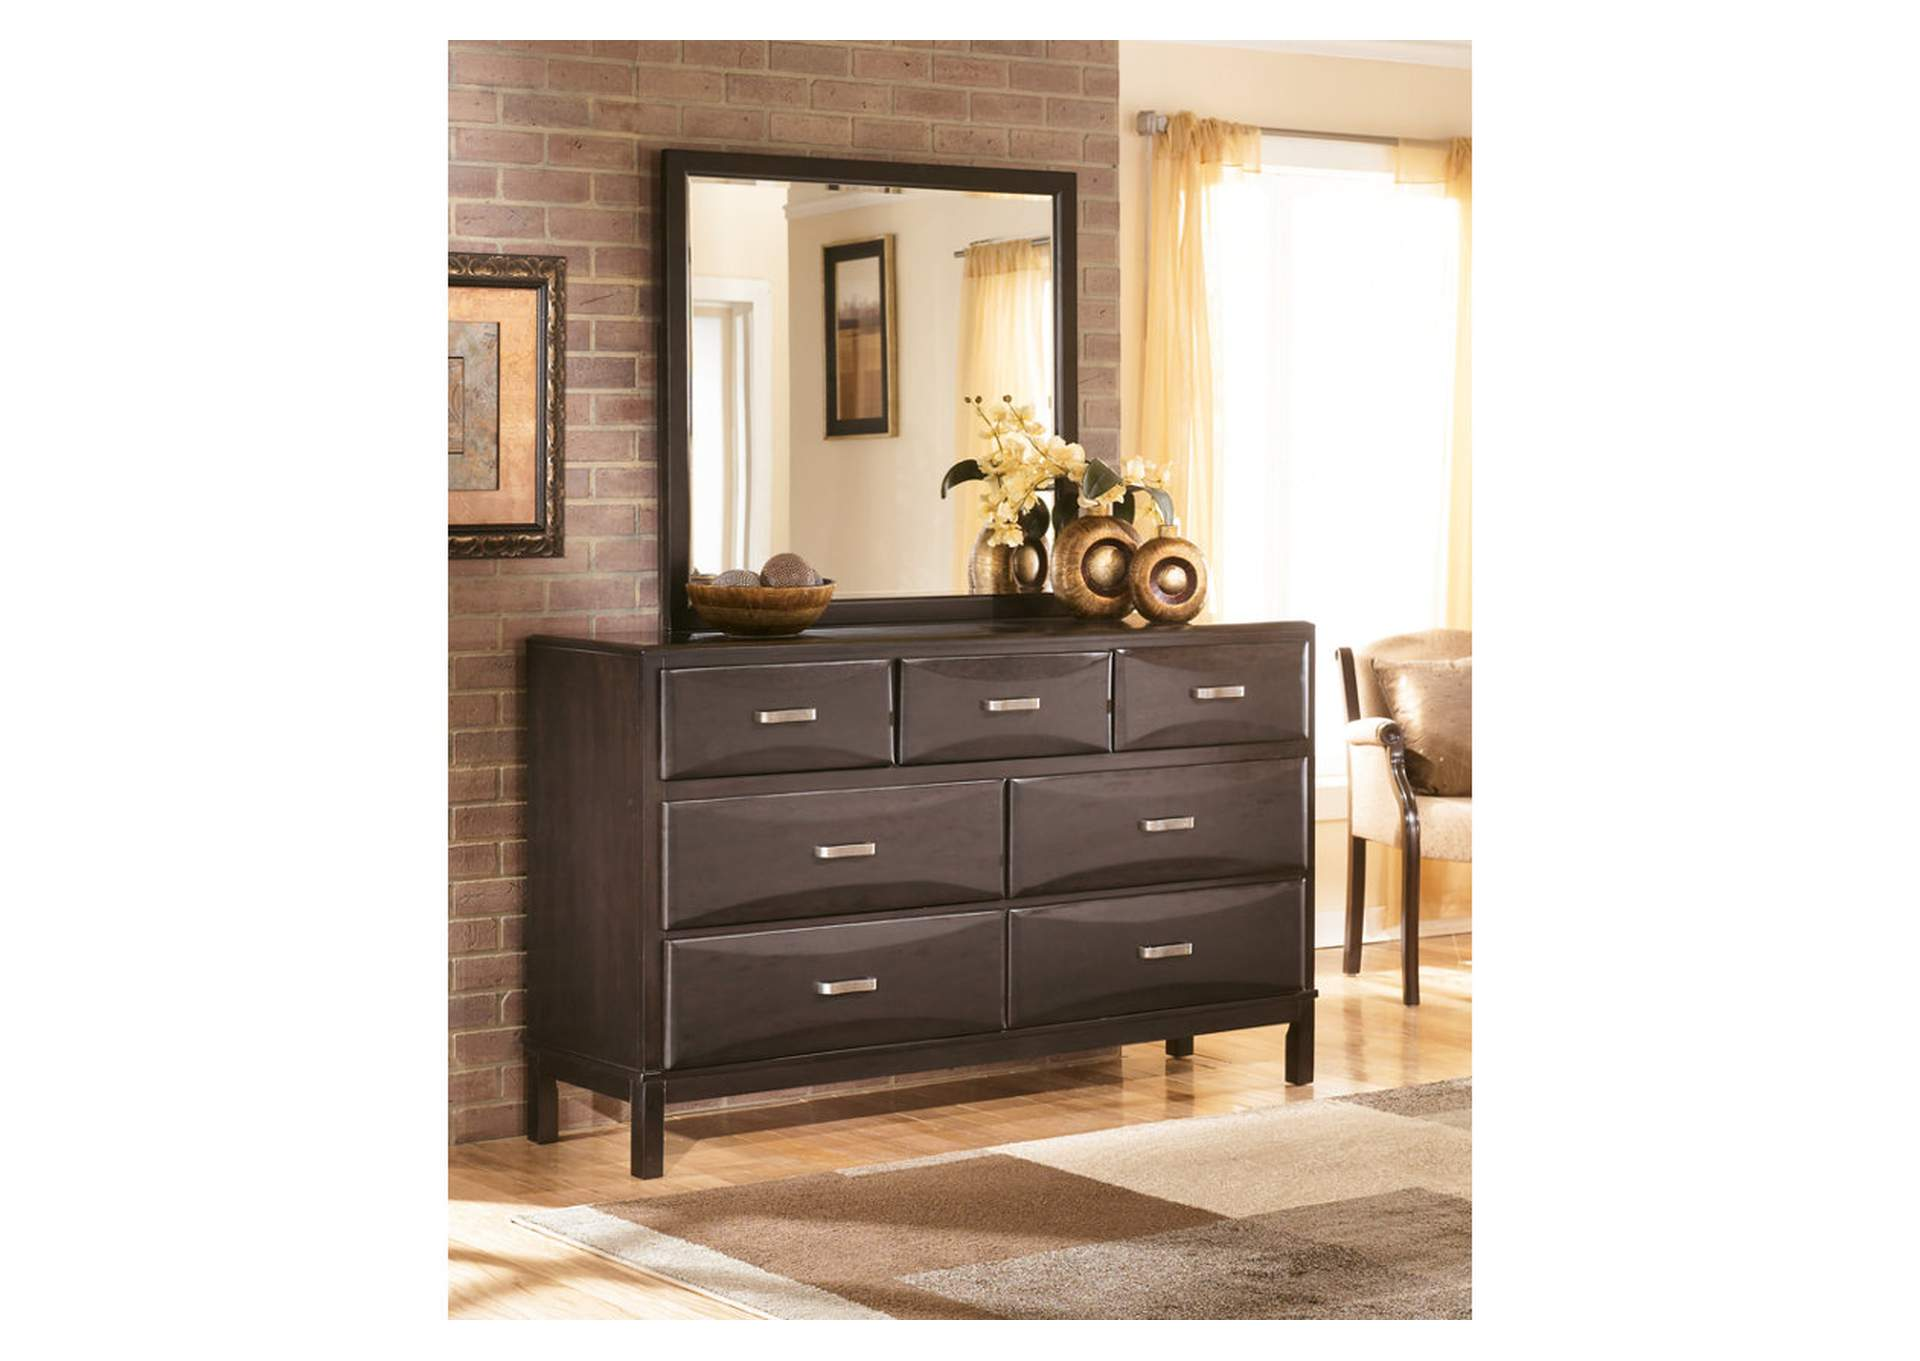 Transit Damaged Freight Kira Black Bedroom Dresser w/Mirror